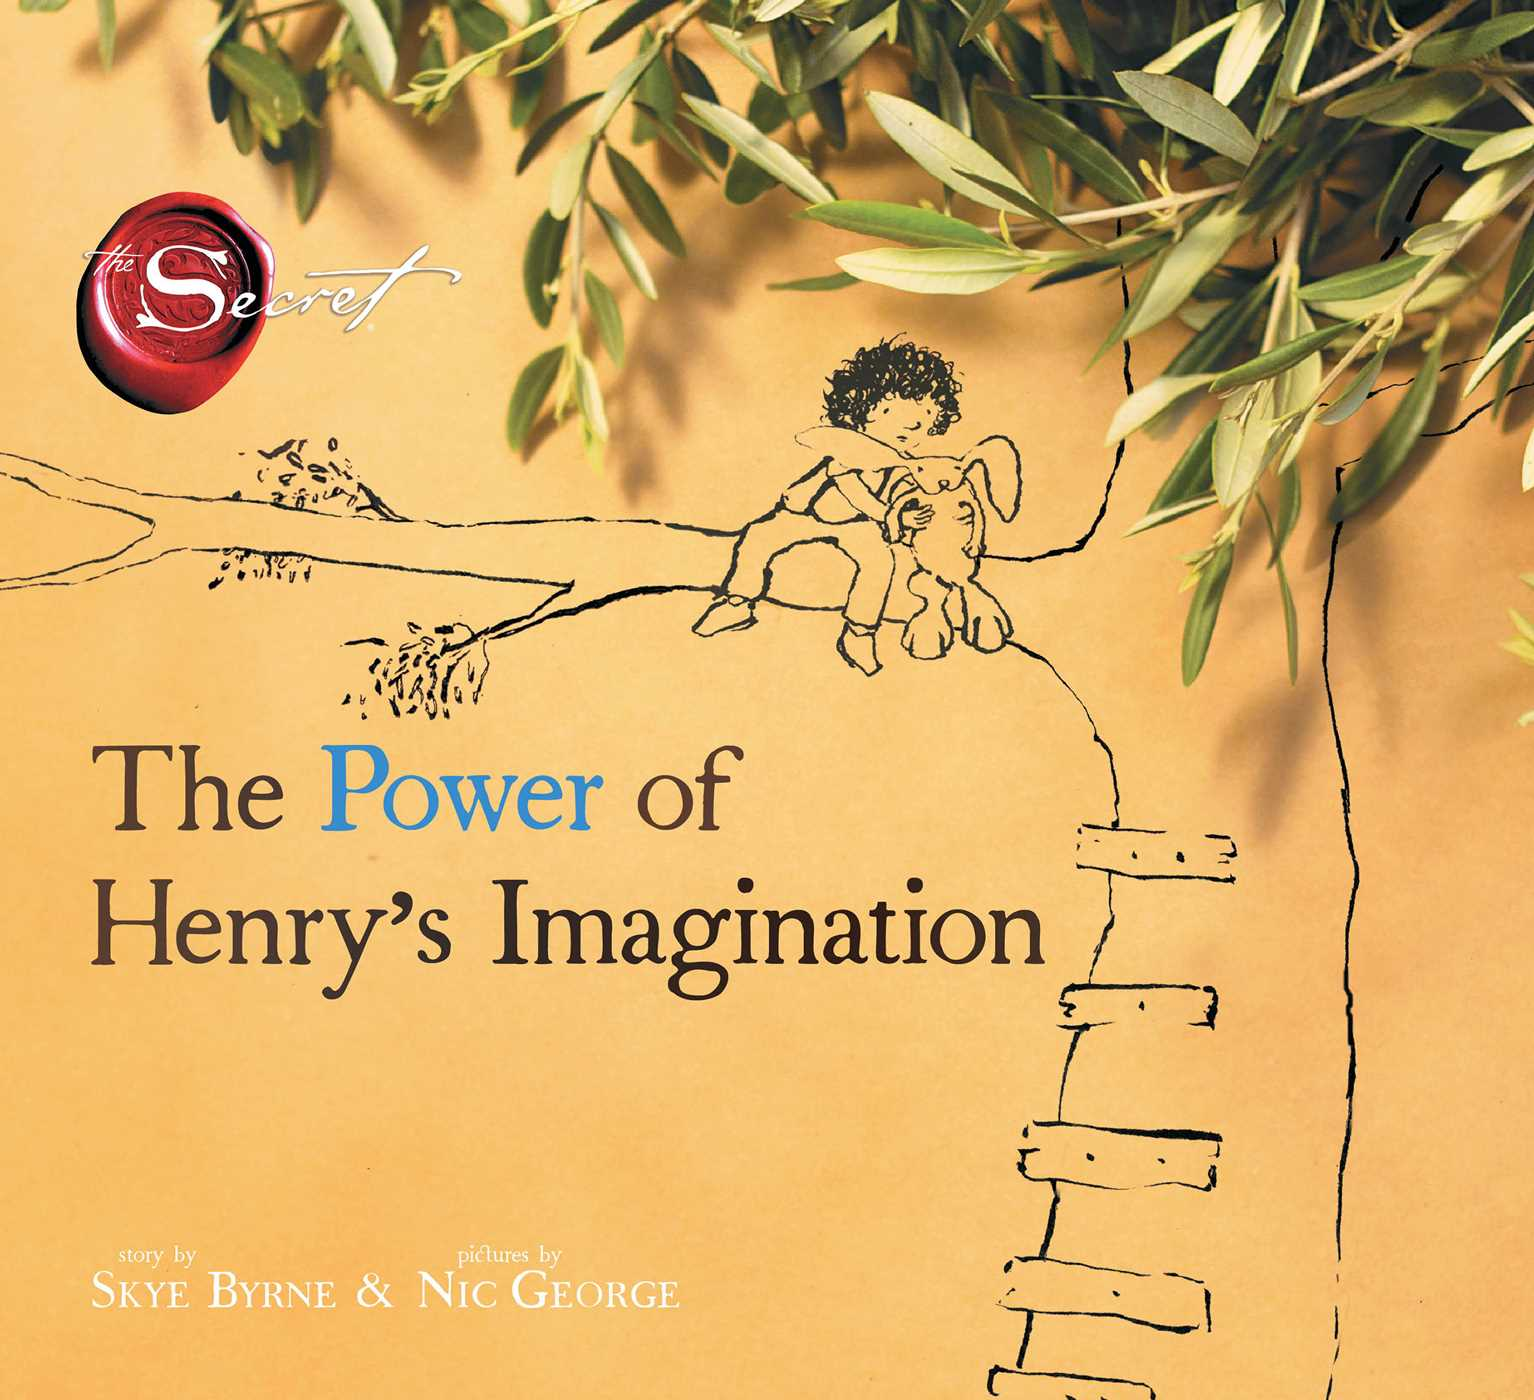 Review: The Power of Henry's Imagination